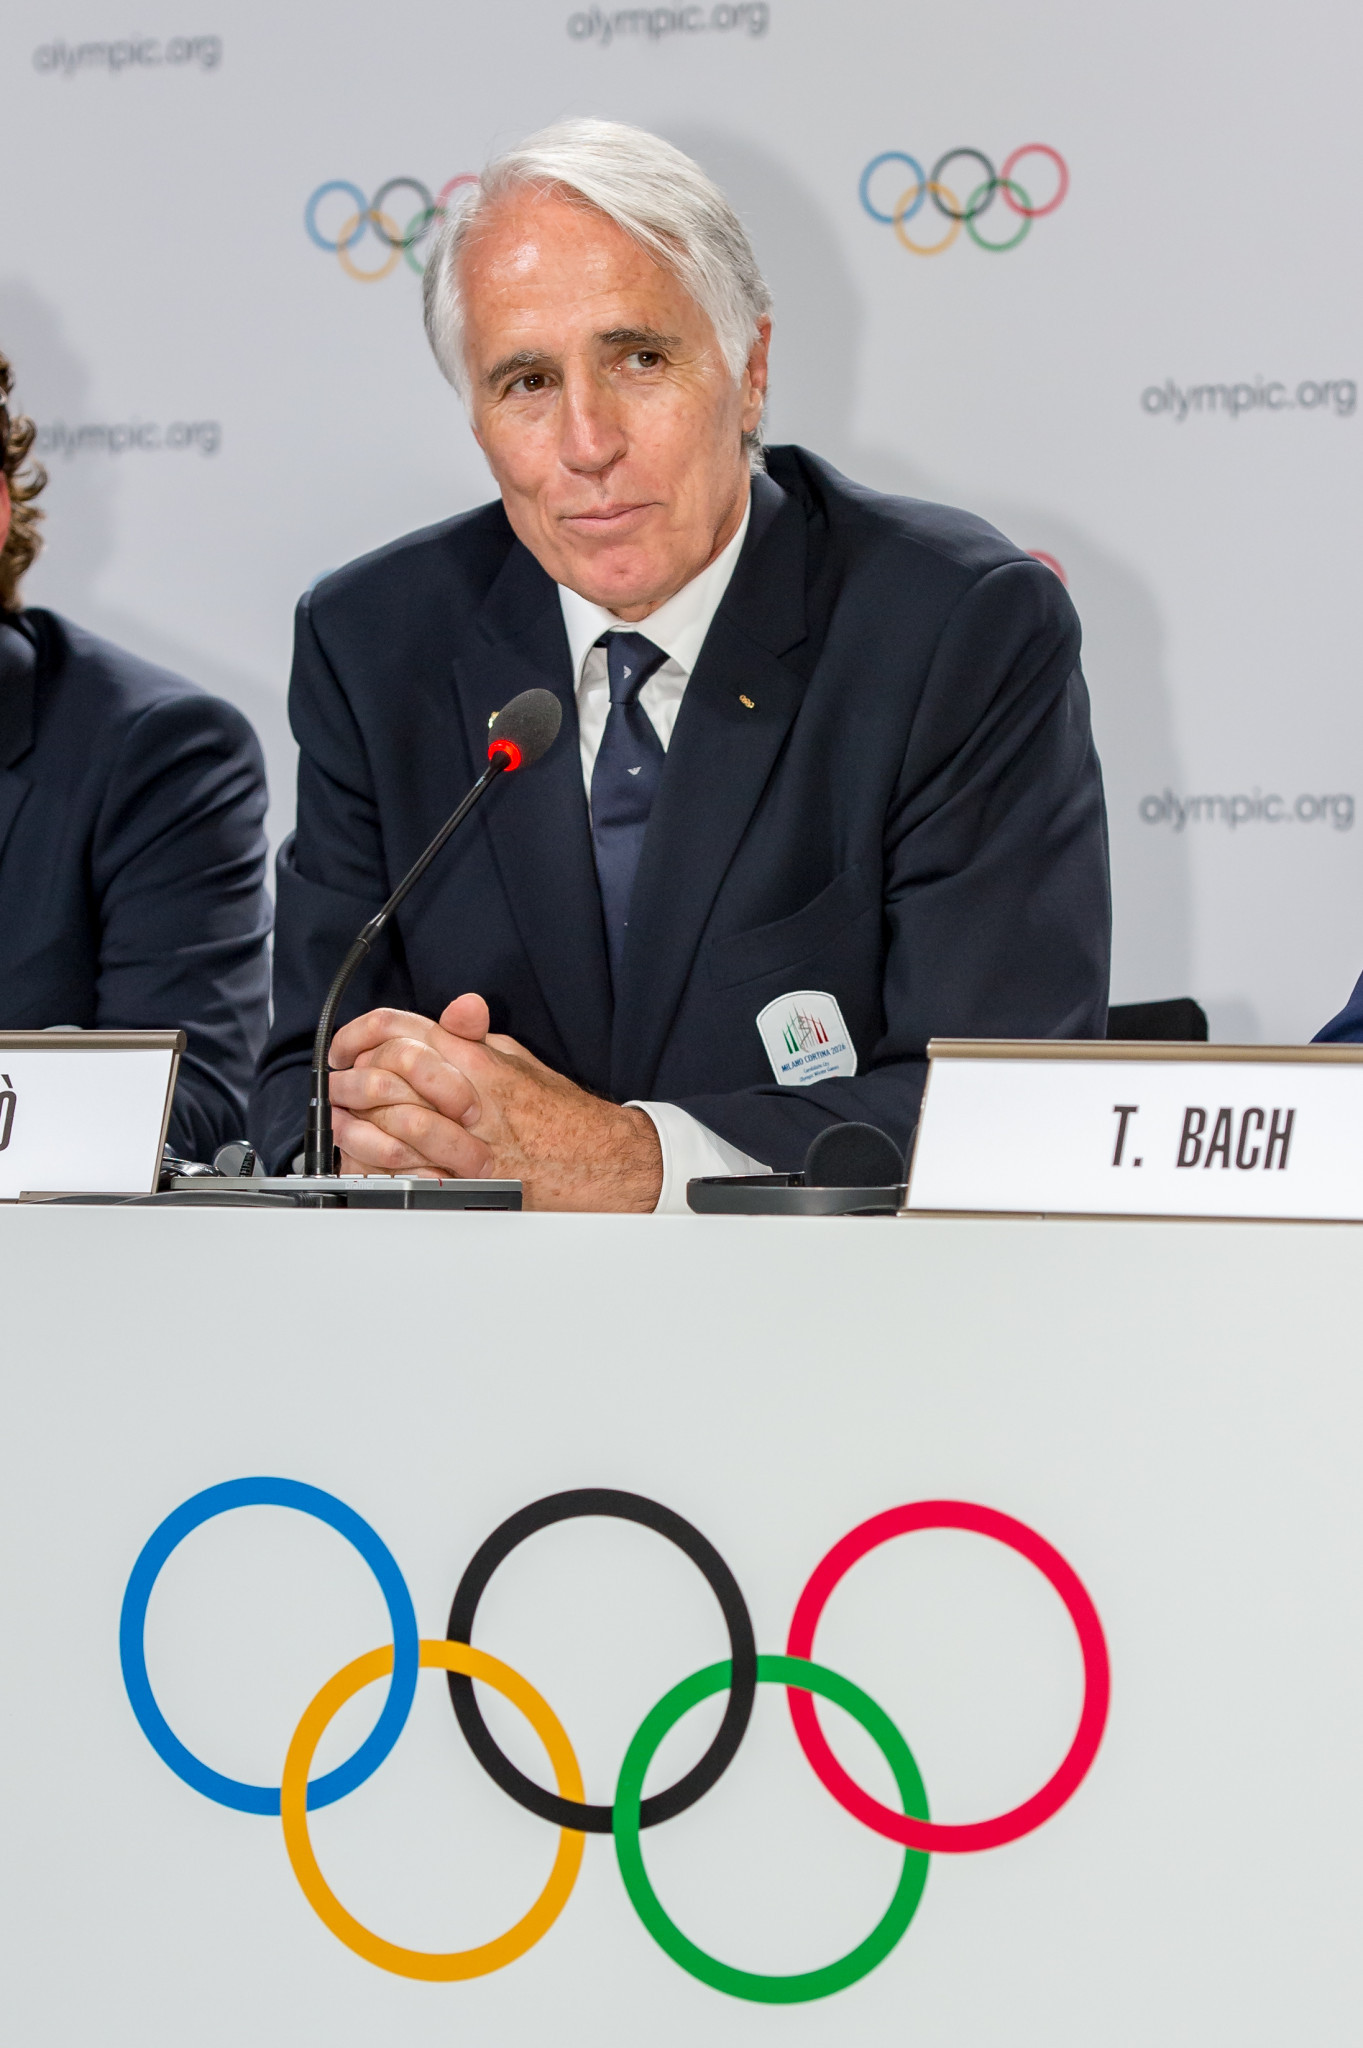 IOC issues stern warning to CONI over potential Olympic Charter breaches